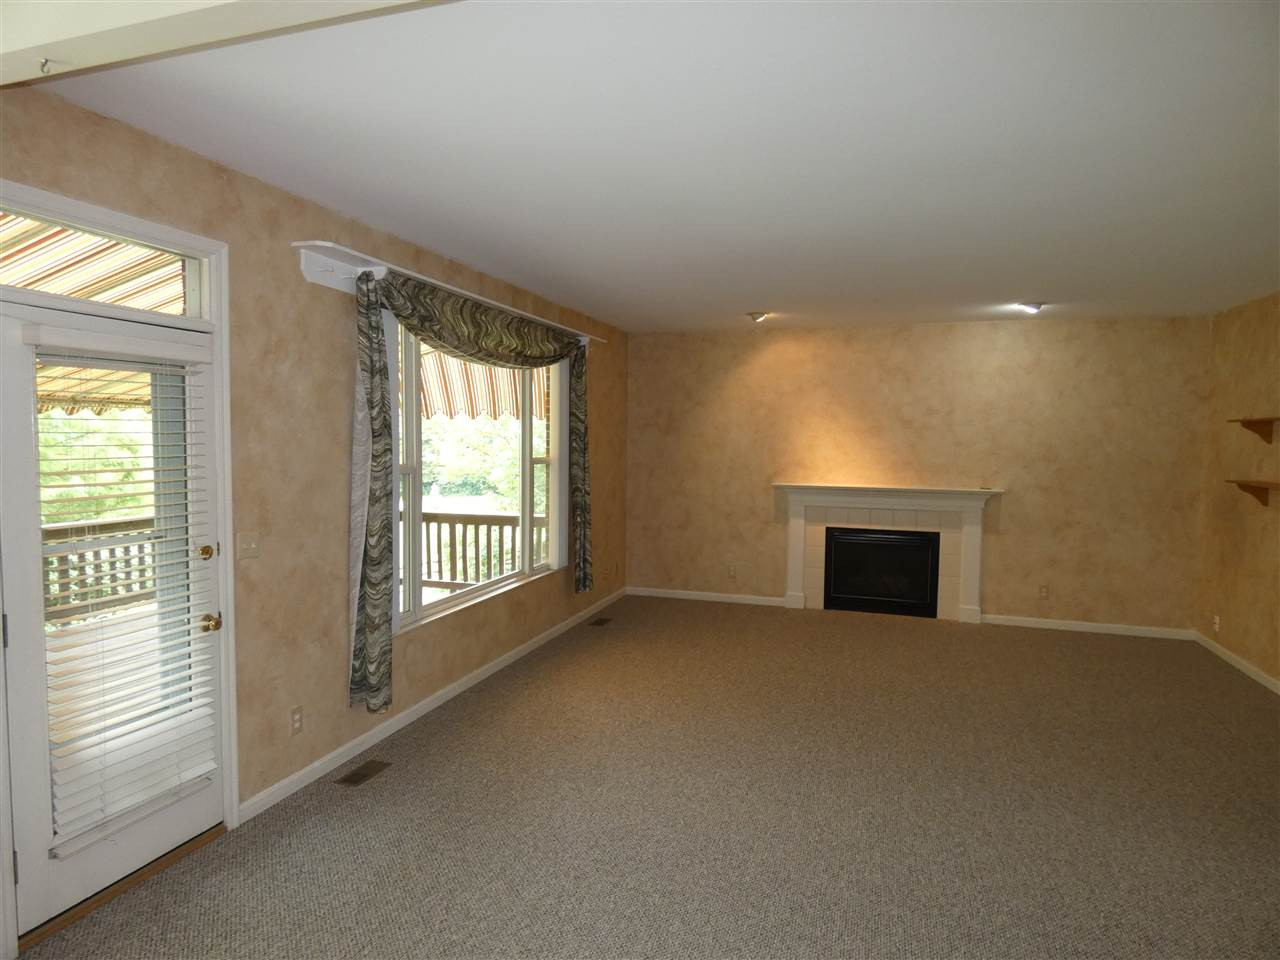 Photo 3 for 821 Schuler Ct Crescent Springs, KY 41017